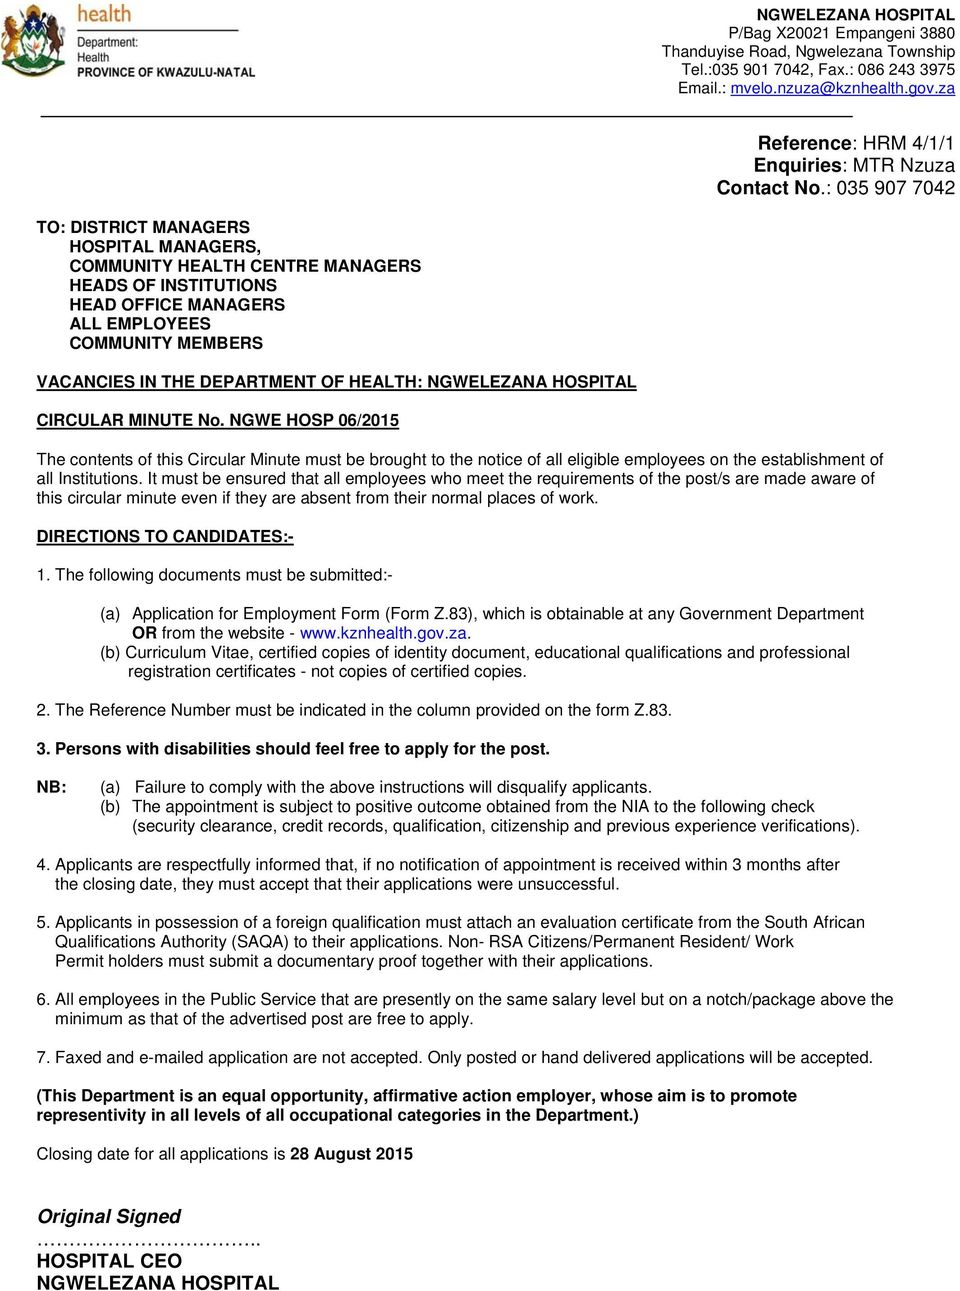 HEALTH: NGWELEZANA HOSPITAL CIRCULAR MINUTE No. NGWE HOSP 06/2015 The contents of this Circular Minute must be brought to the notice of all eligible employees on the establishment of all Institutions.